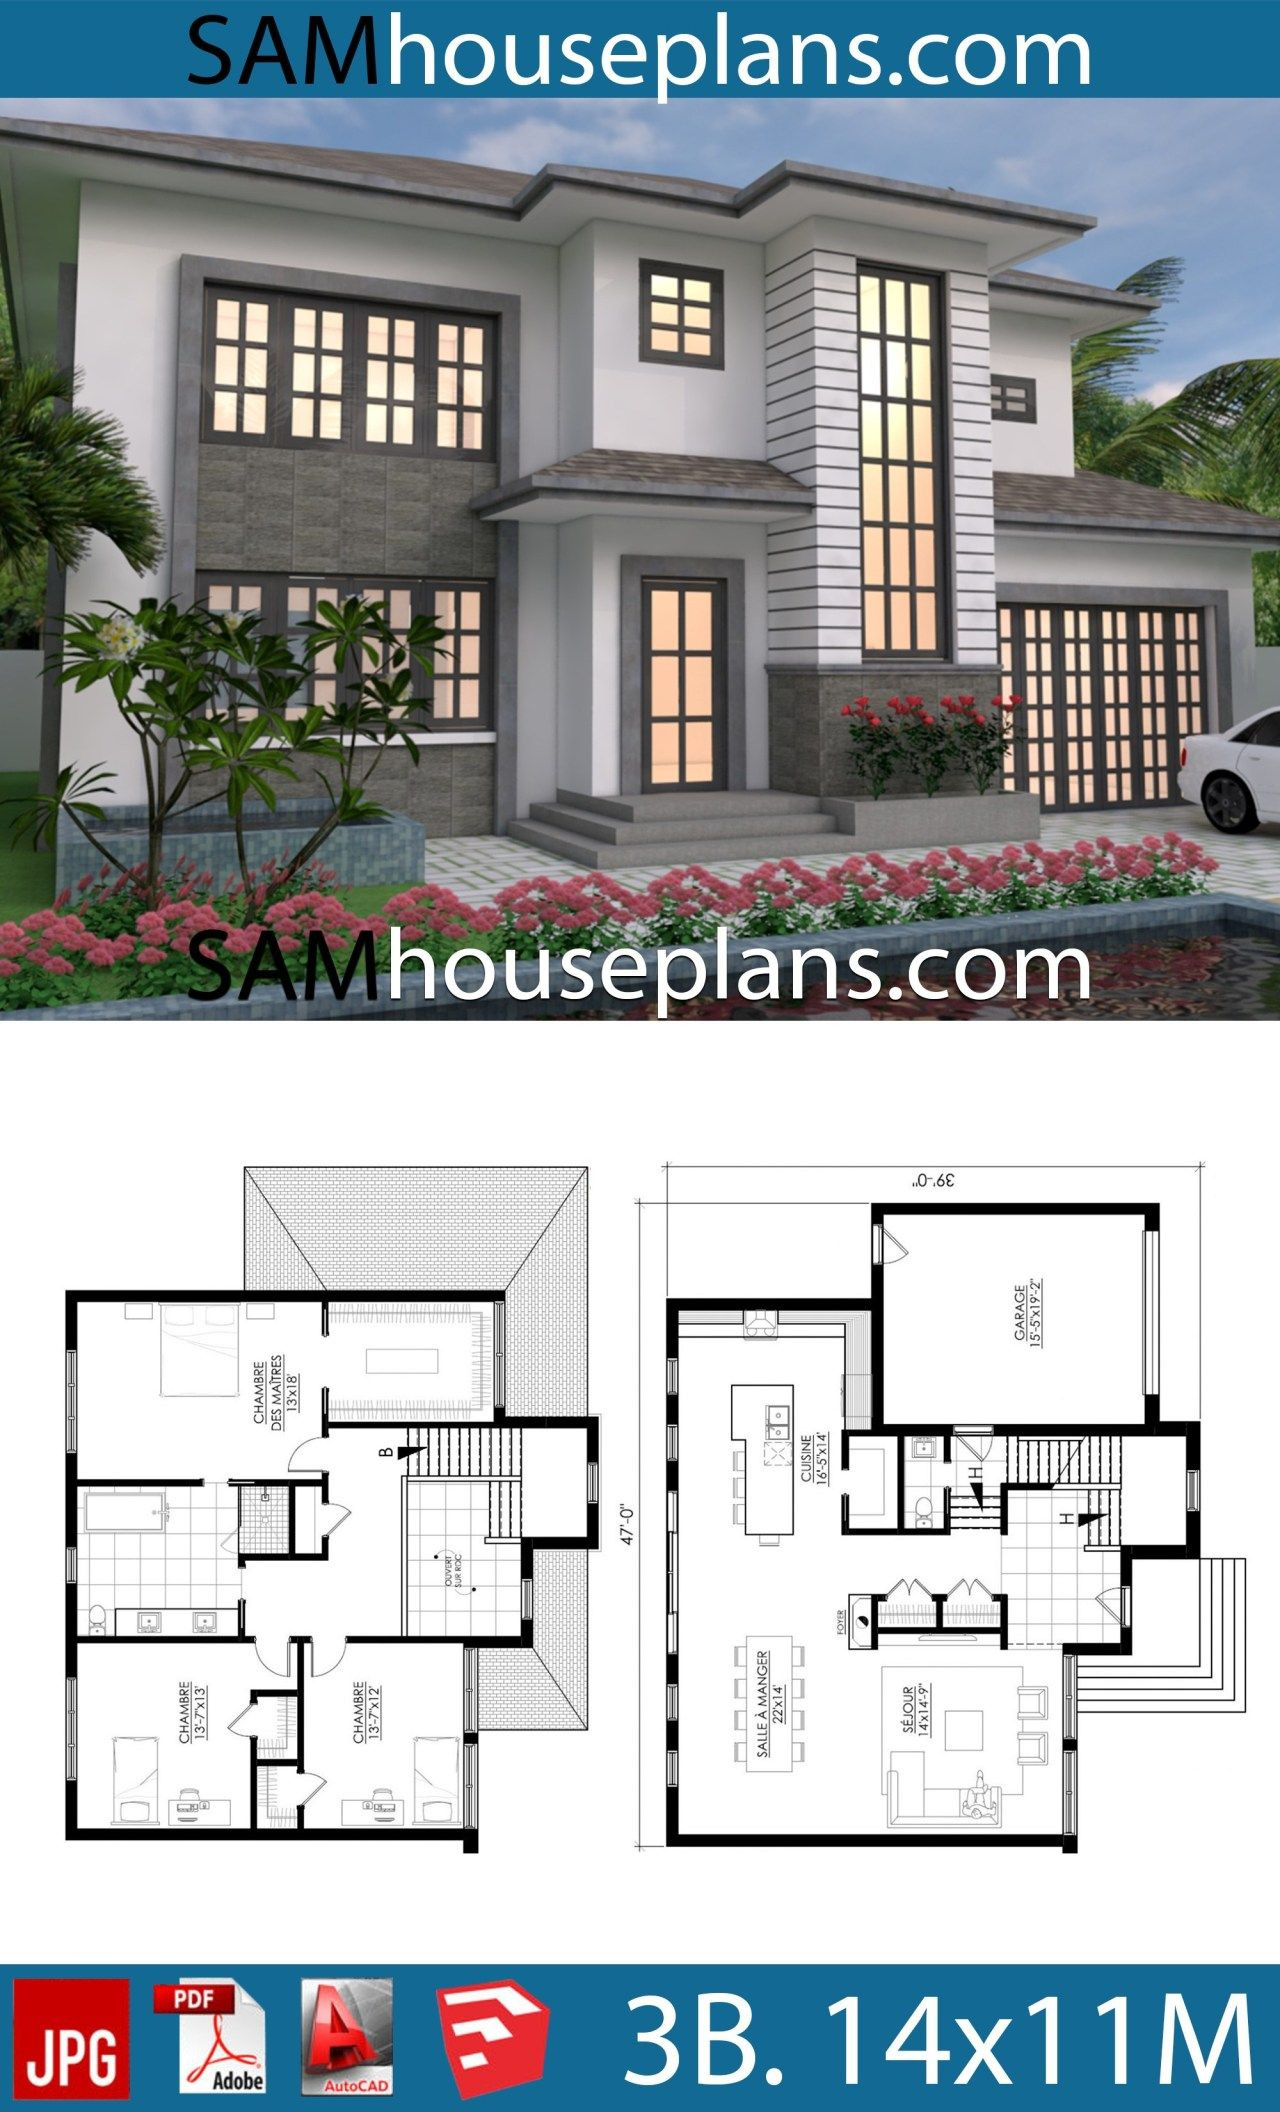 Modern African House Plans Luxury House Plans 14x11 with 3 Bedrooms